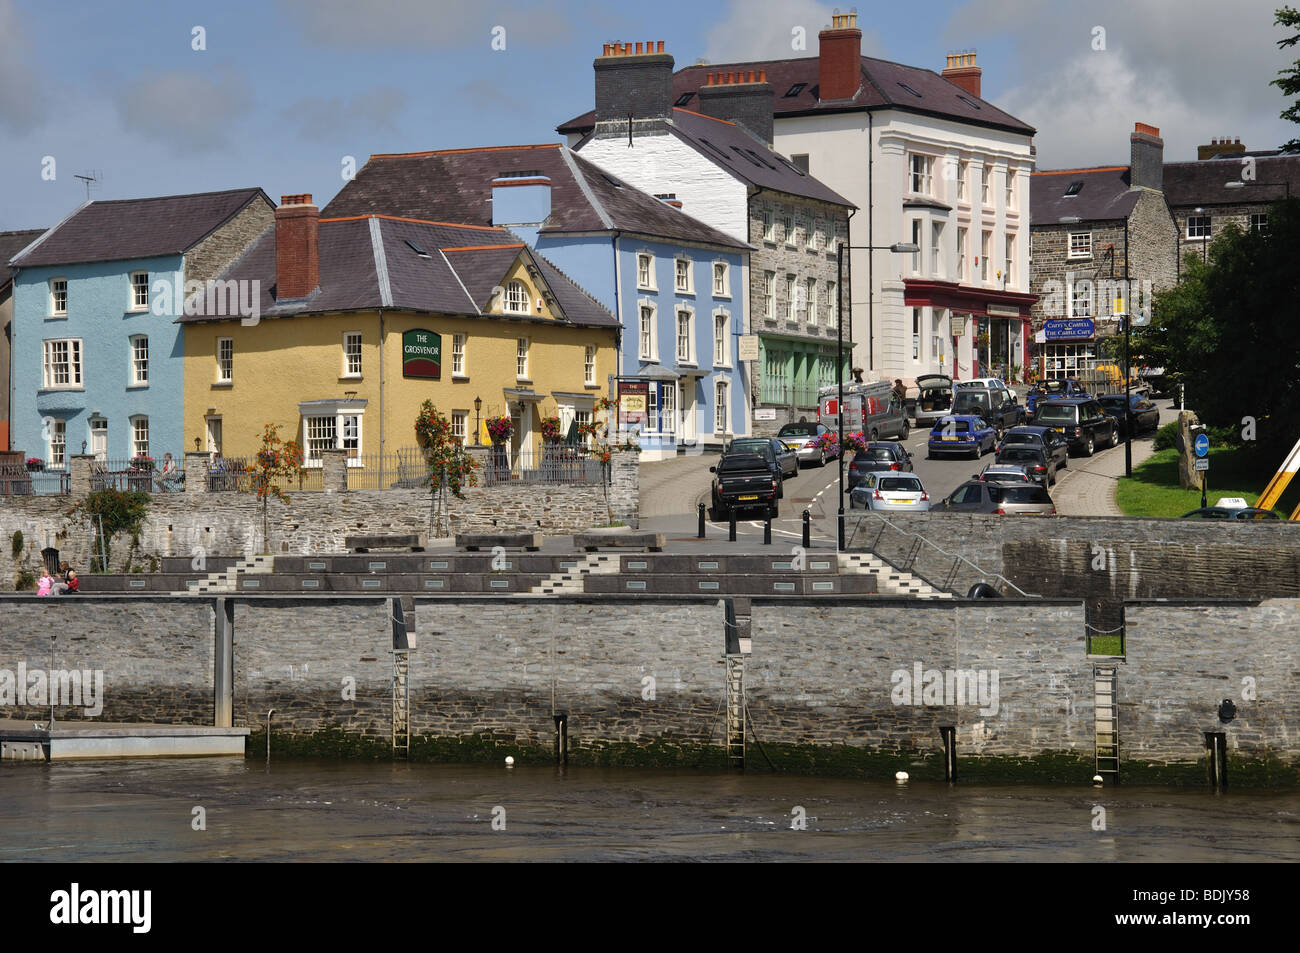 Grosvernor pub and hill, Cardigan town, Wales Stock Photo